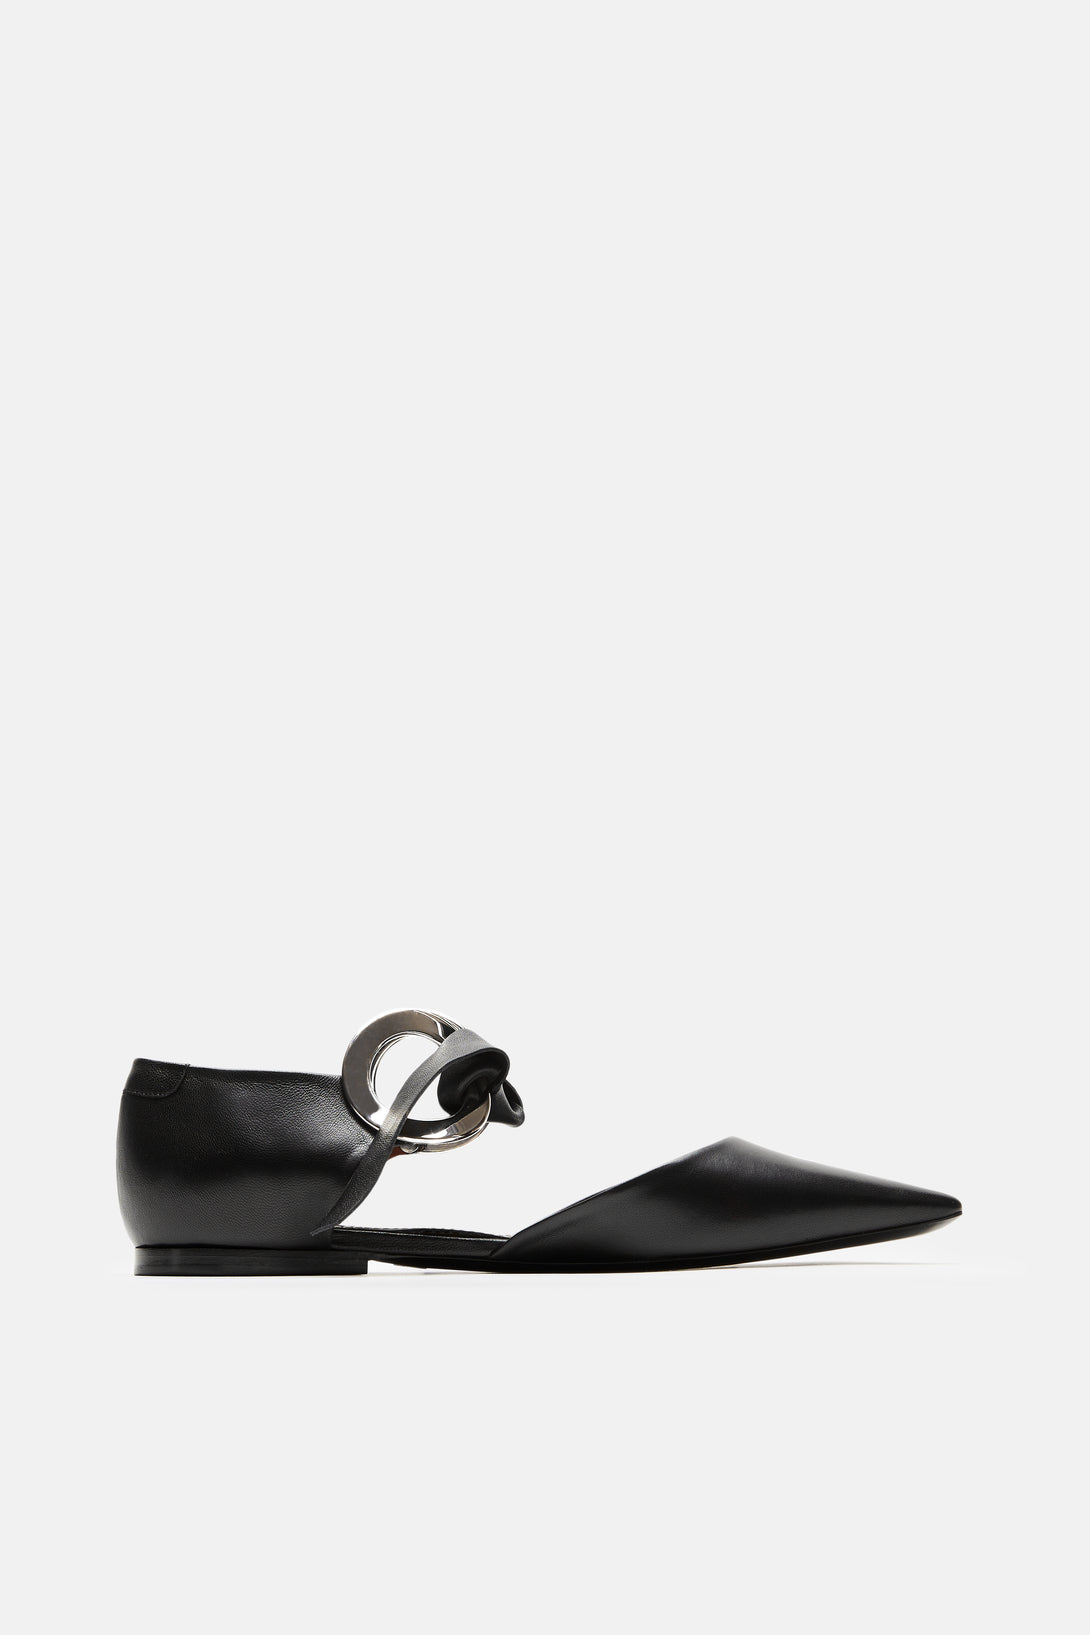 Ring Tie Flats - Black